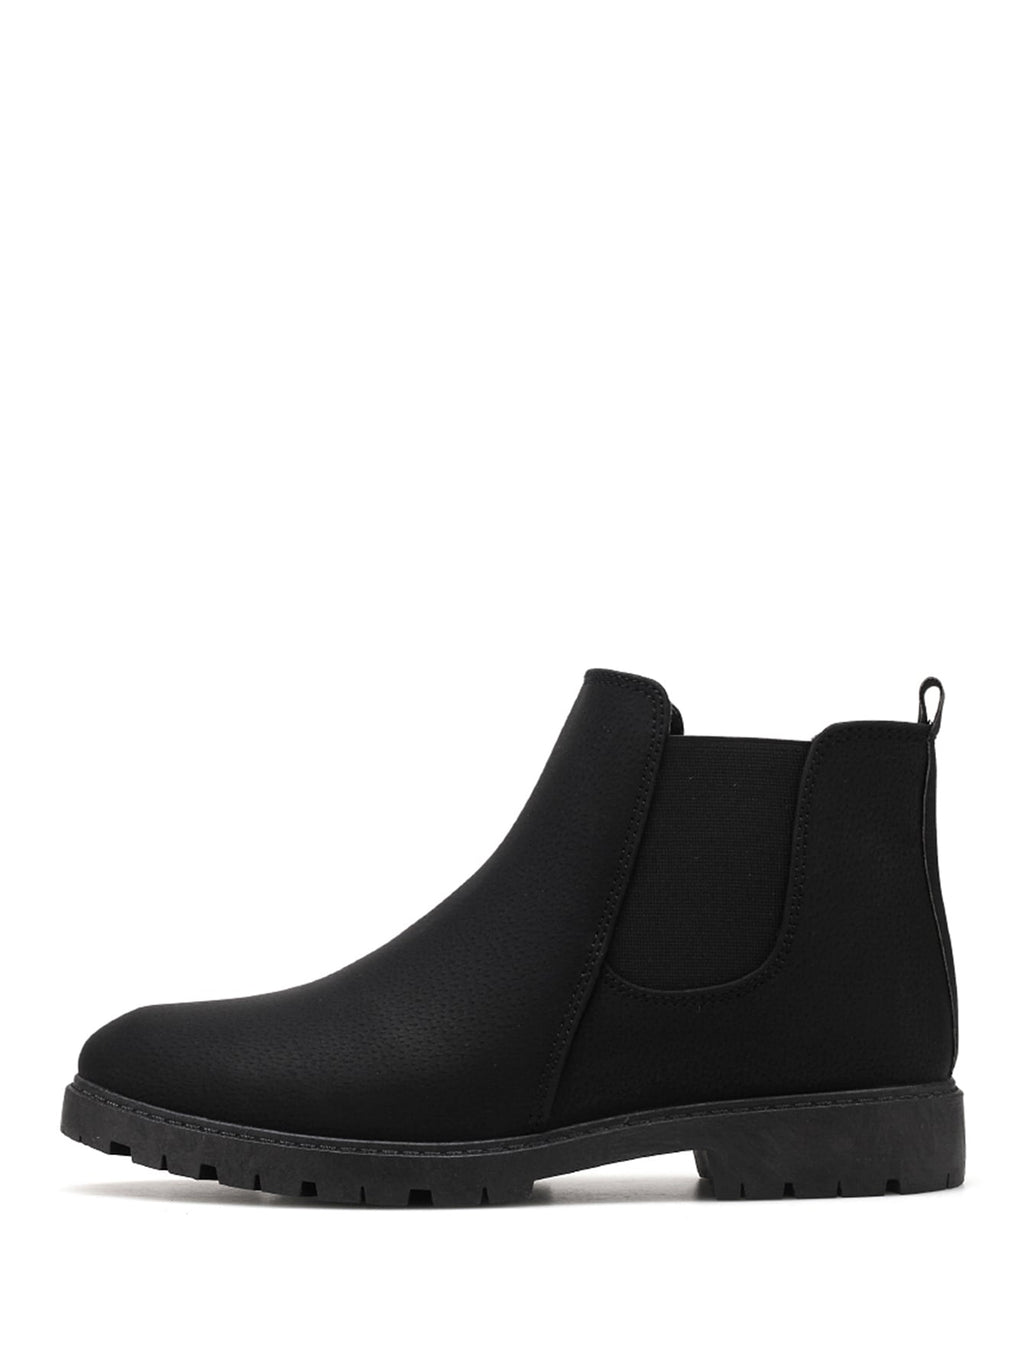 Men's Fashion Boots - Slip On Chelsea Boots